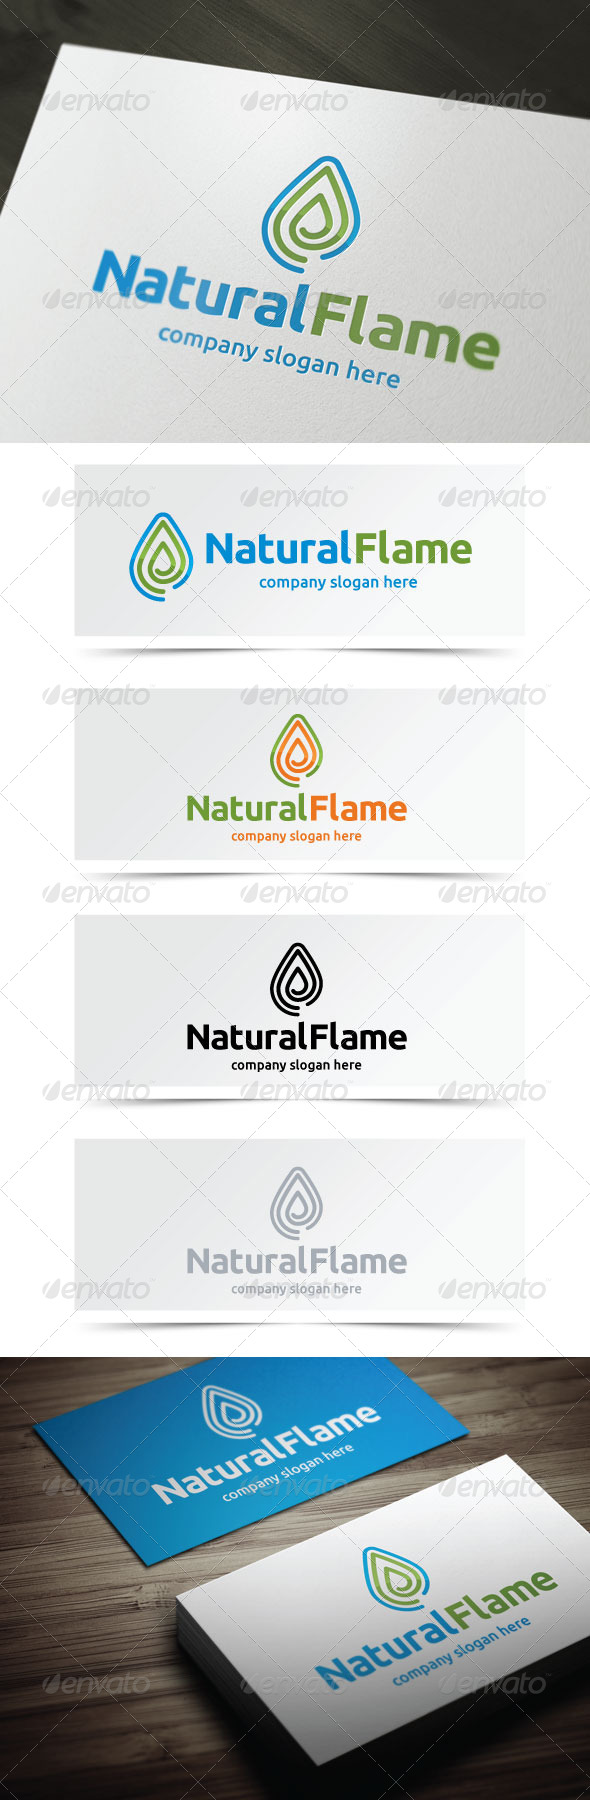 GraphicRiver Natural Flame 5211648